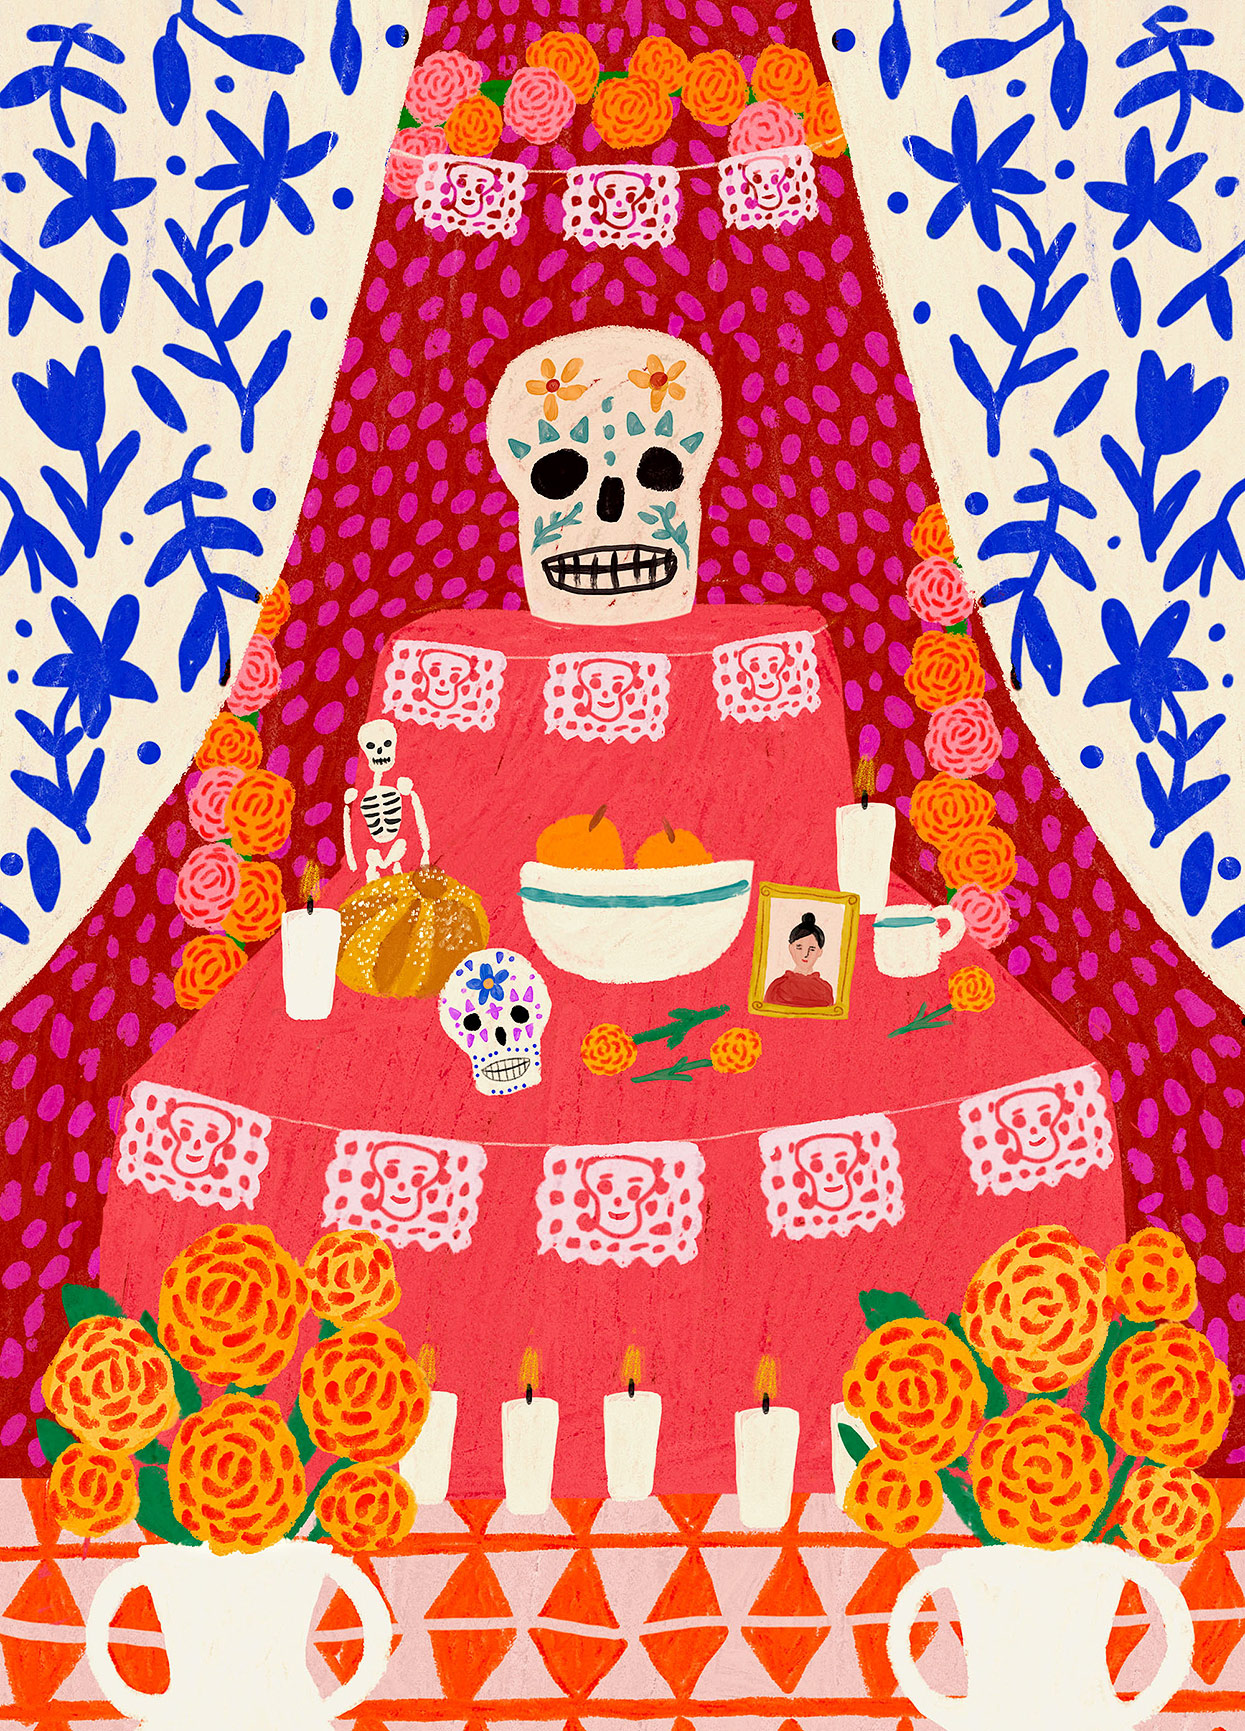 day of the dead illustration with candles and marigolds